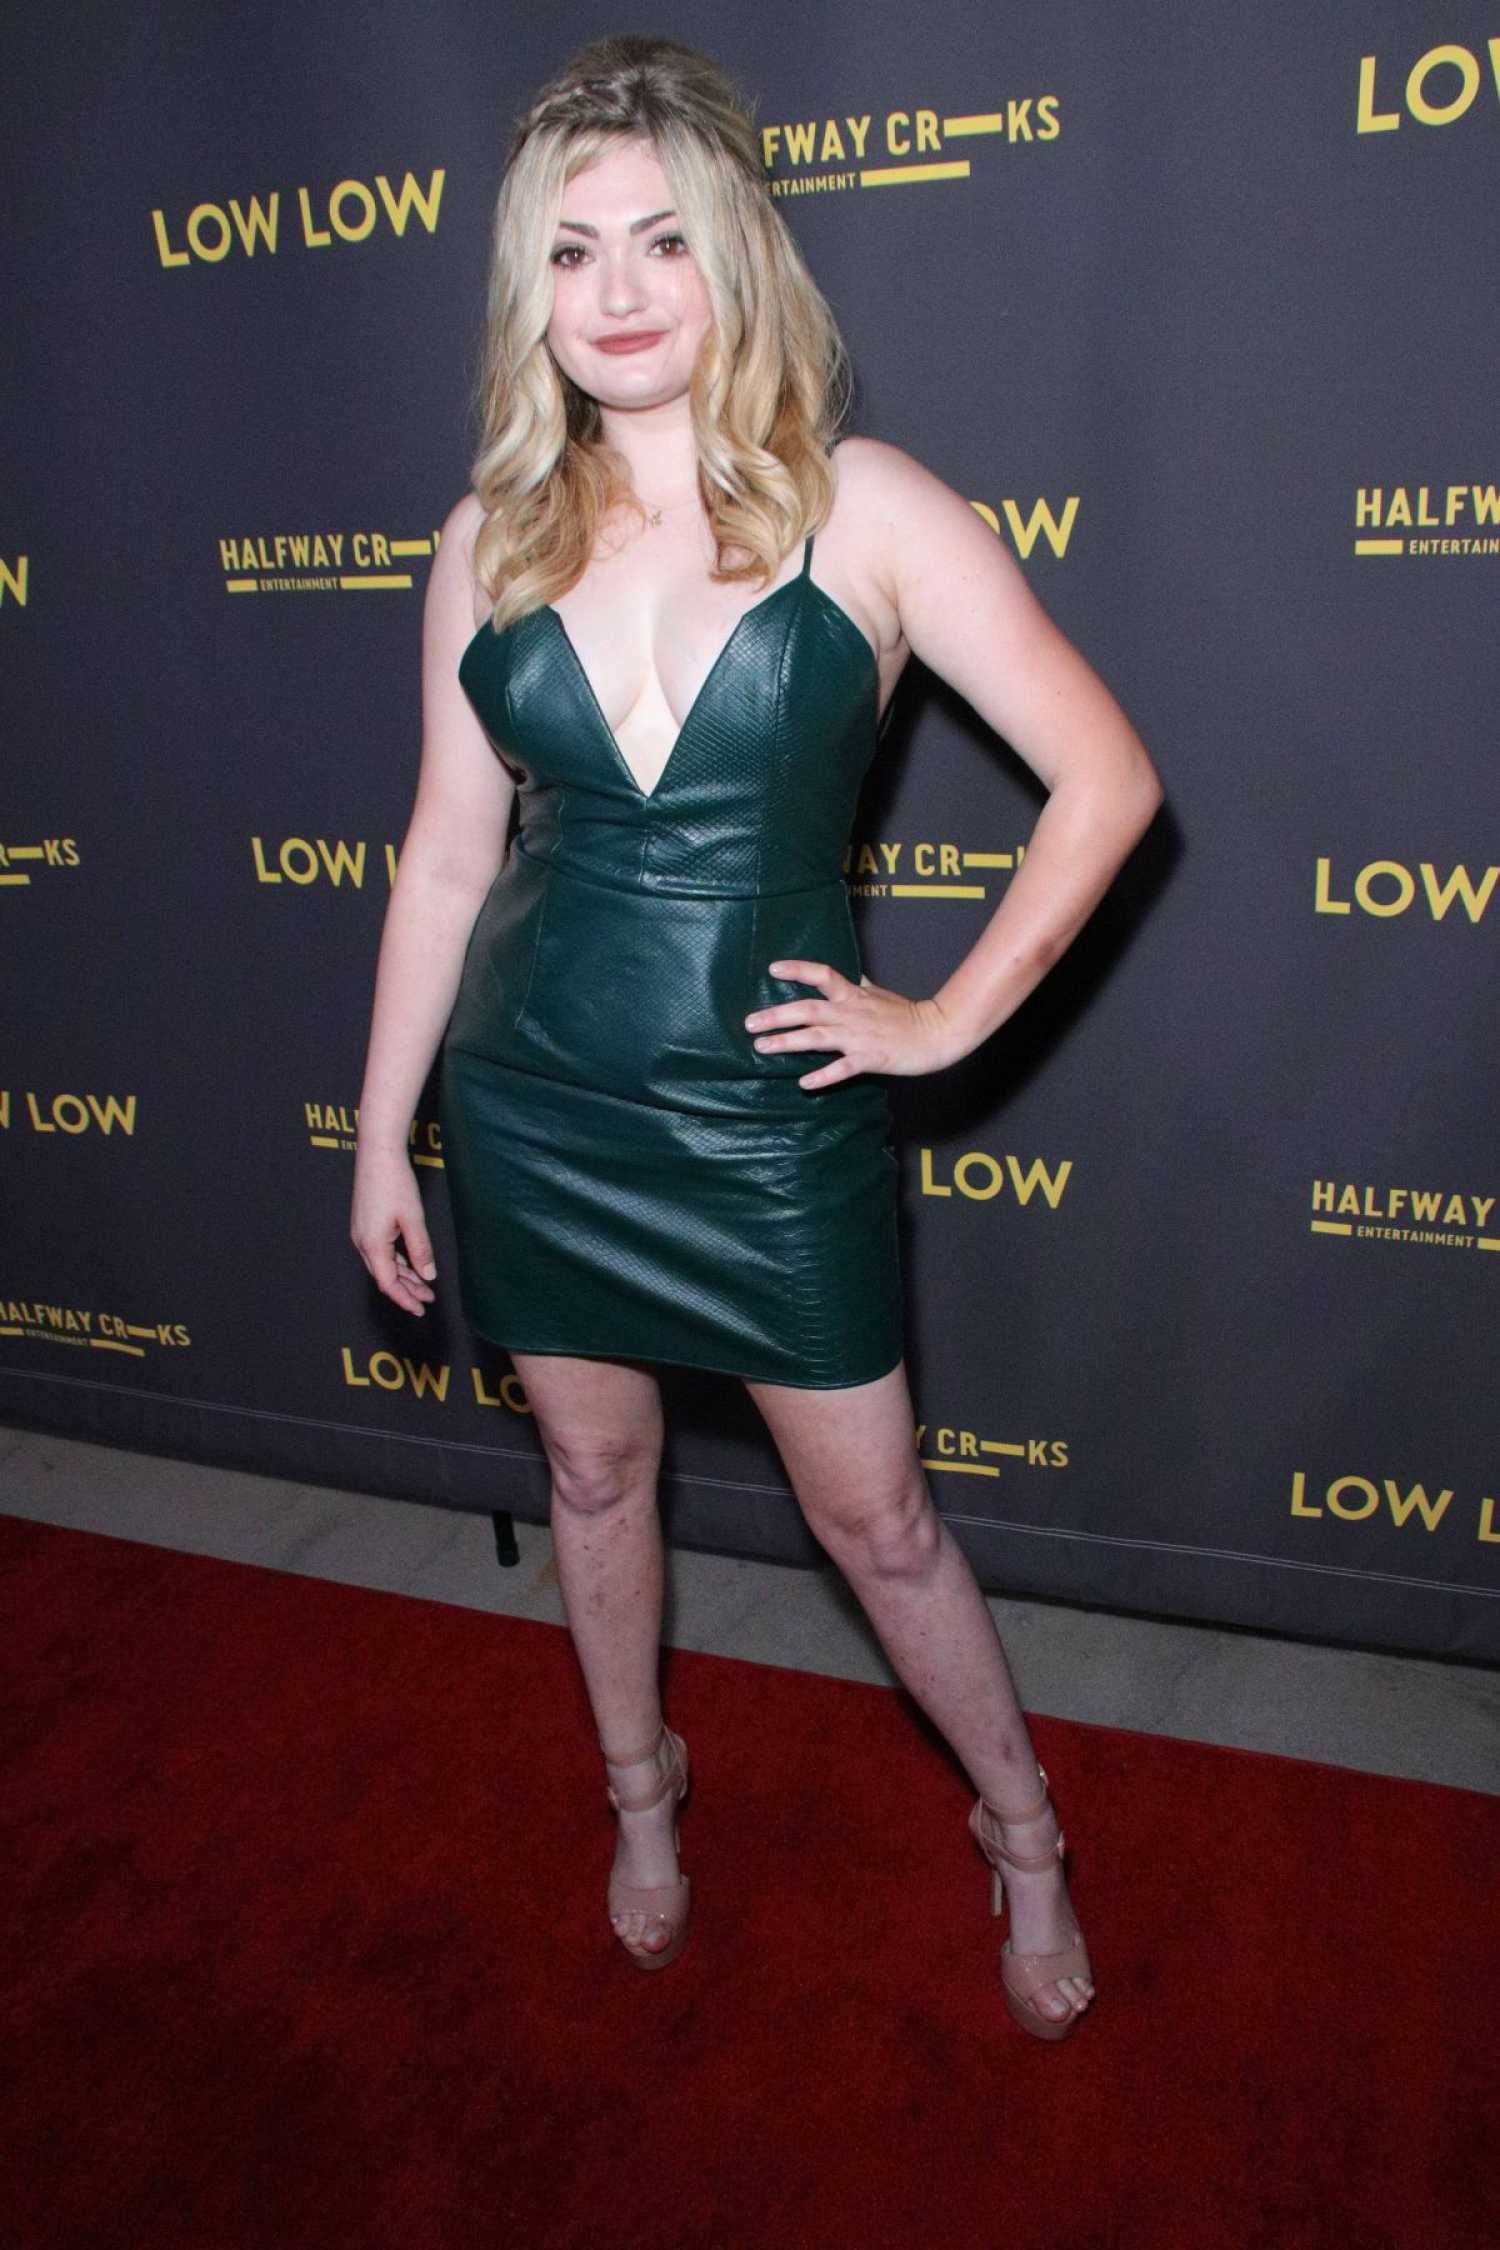 Alexis Raich Attends The Low Low Premiere At Arclight